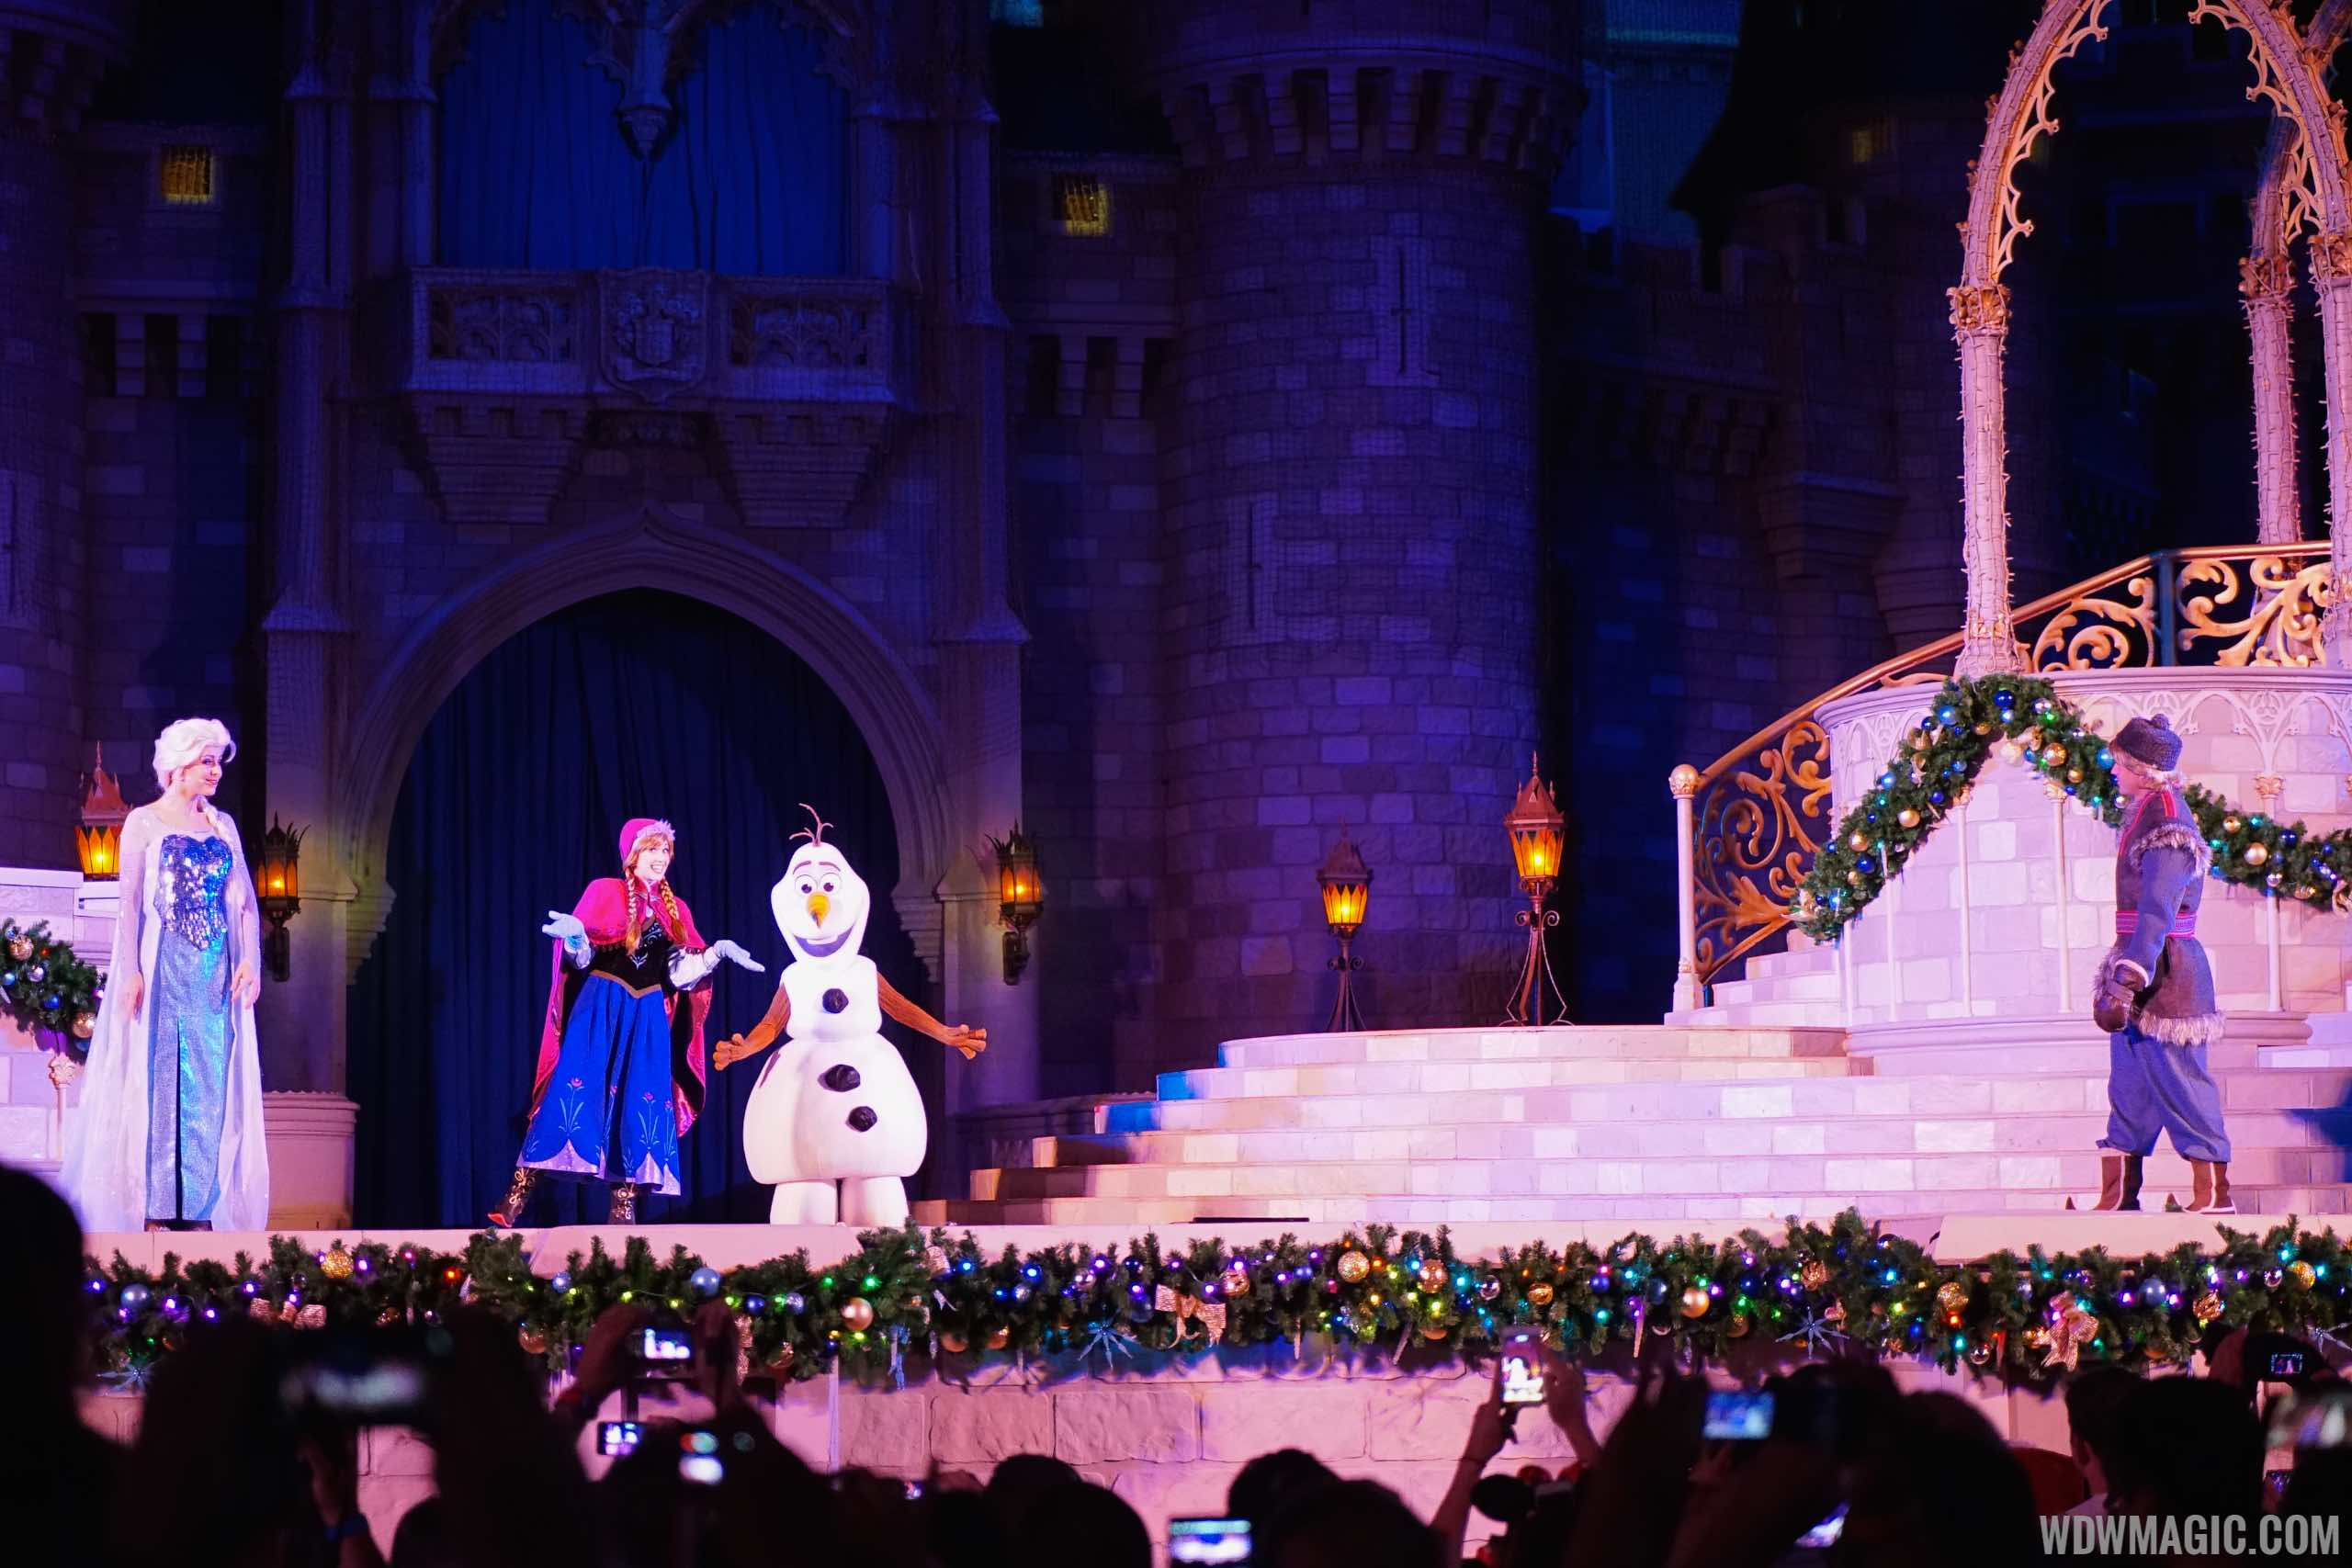 A Frozen Holiday Wish opening show